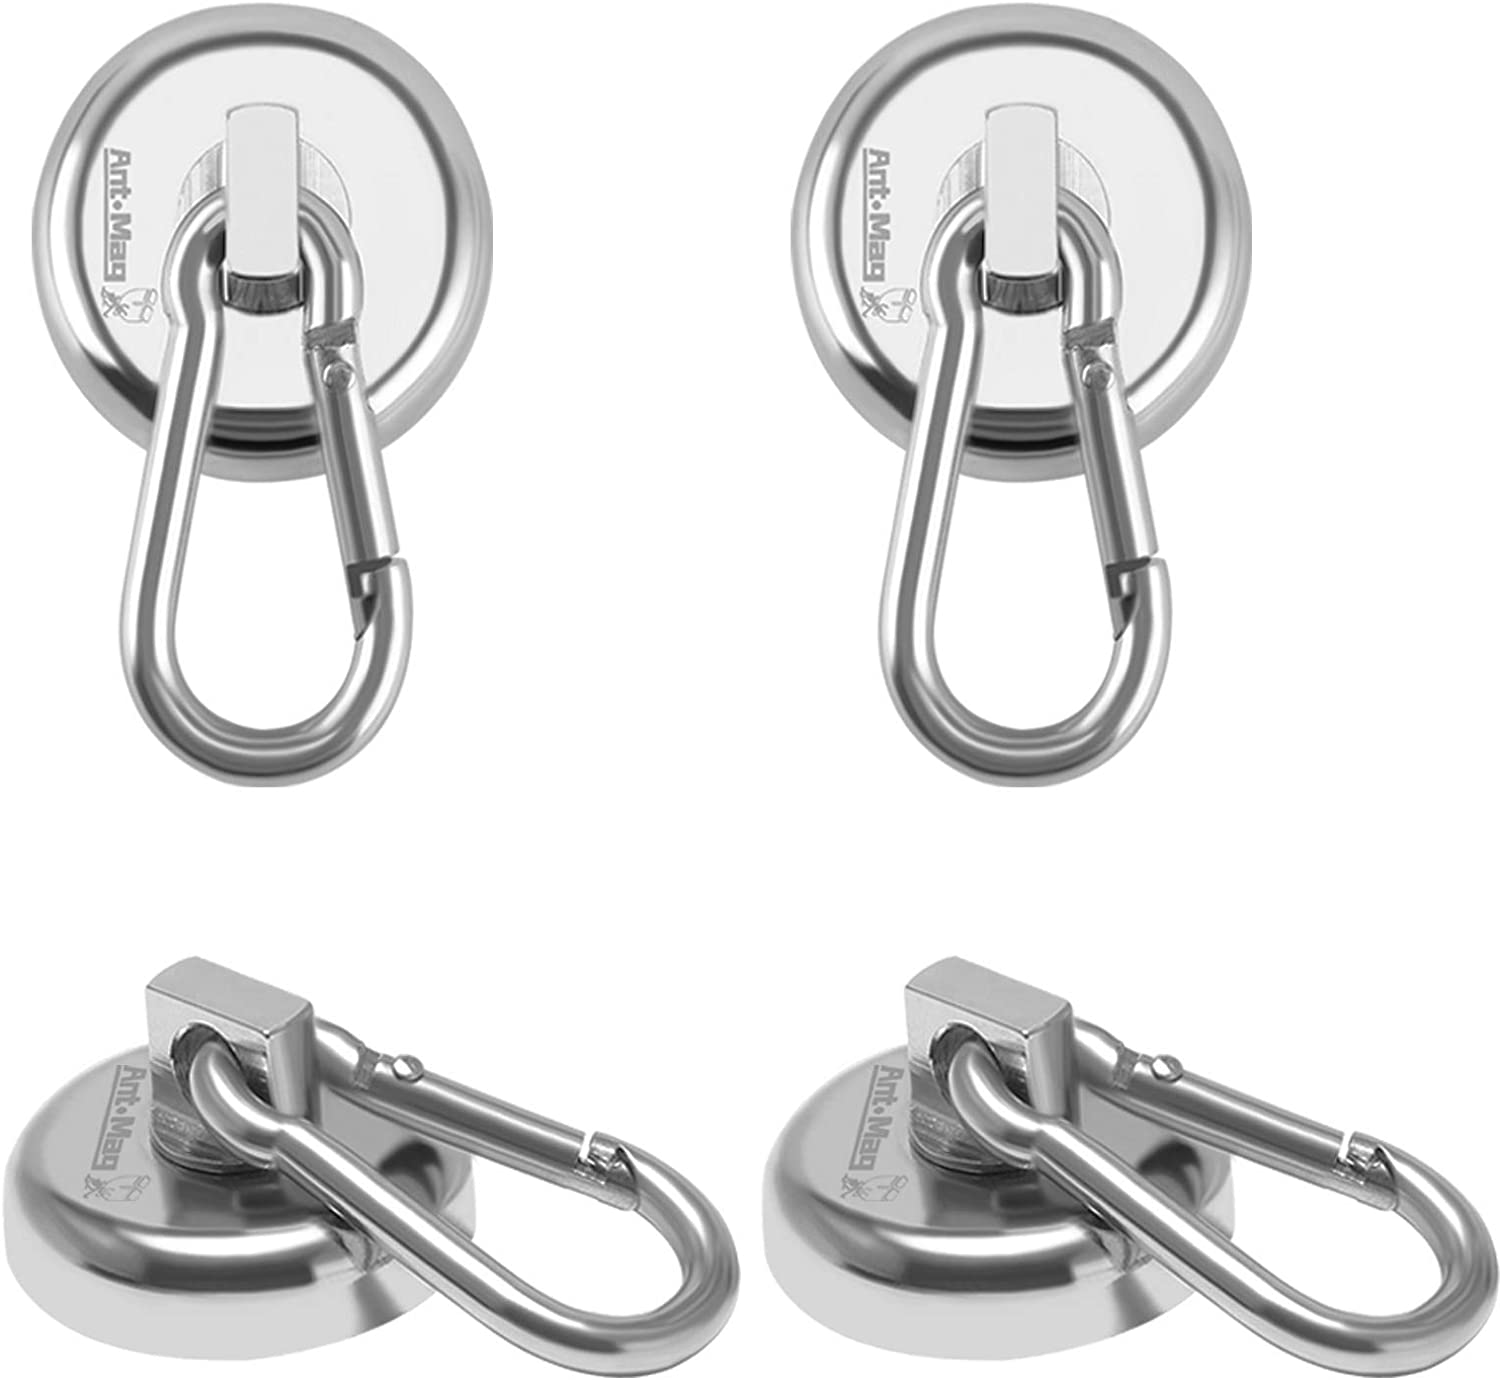 Heavy Duty Super Strong Neodymium Magnetic Hook /& Carabiner Set Scratch Proof!